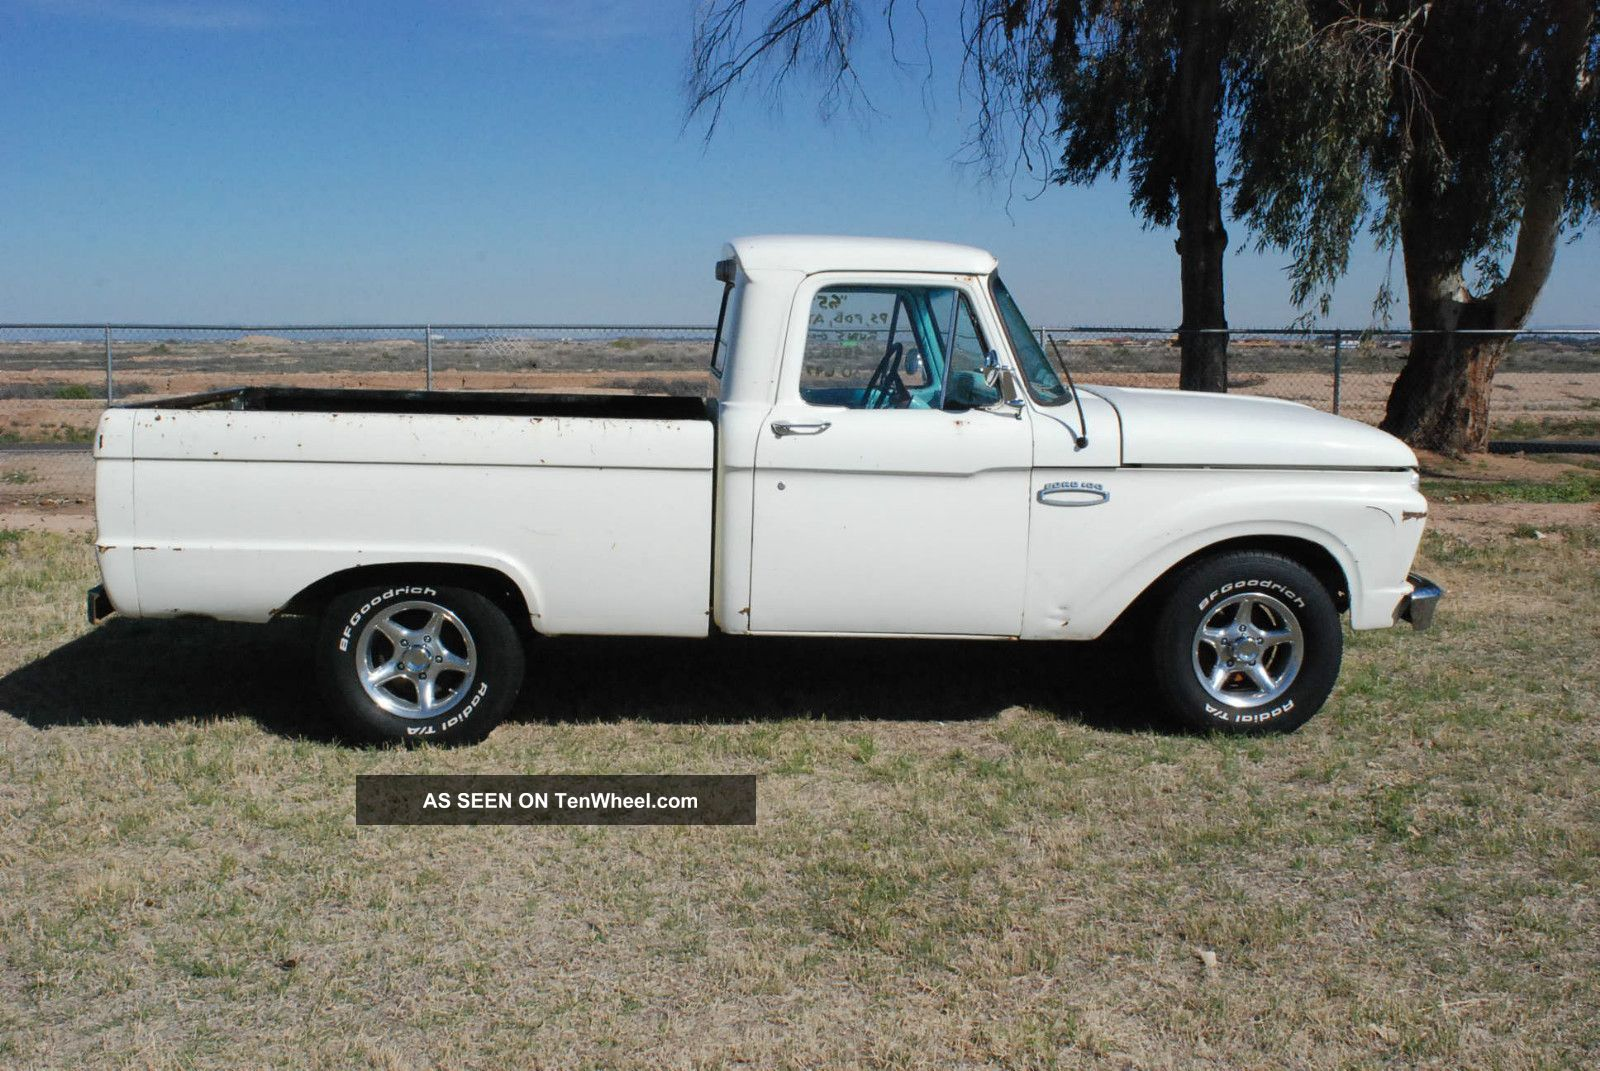 1965 Ford F100 Short Bed Truck 1961 Chevy C10